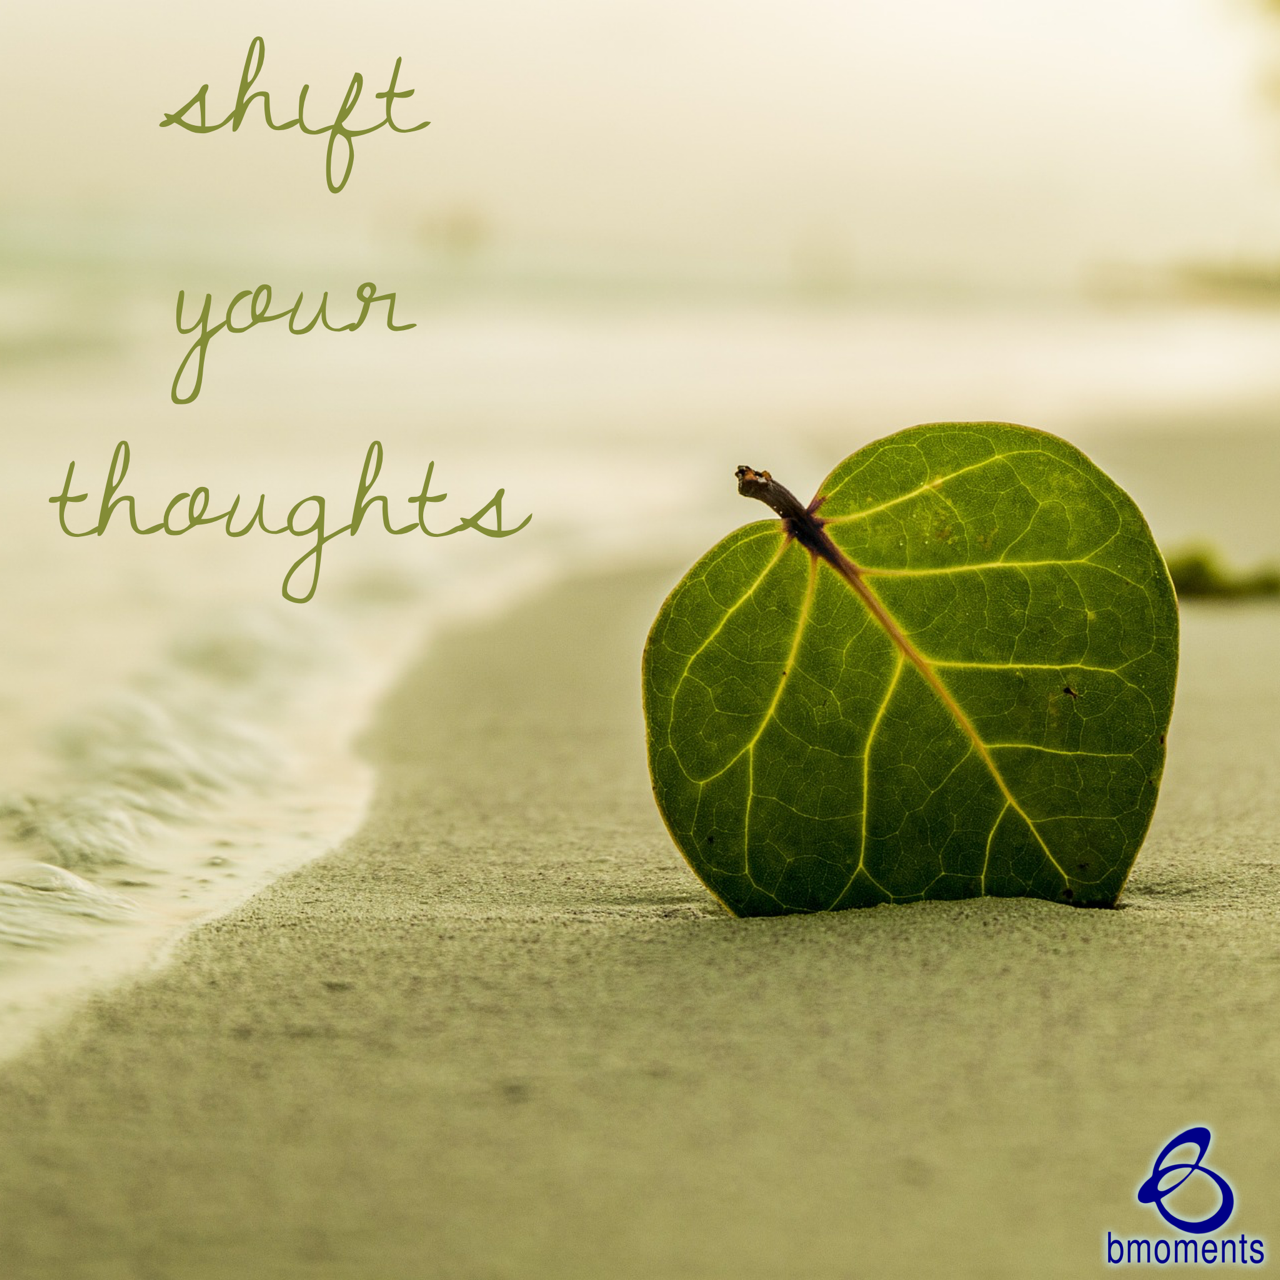 Anything Is Possible: Just Shift Your Thoughts and Words